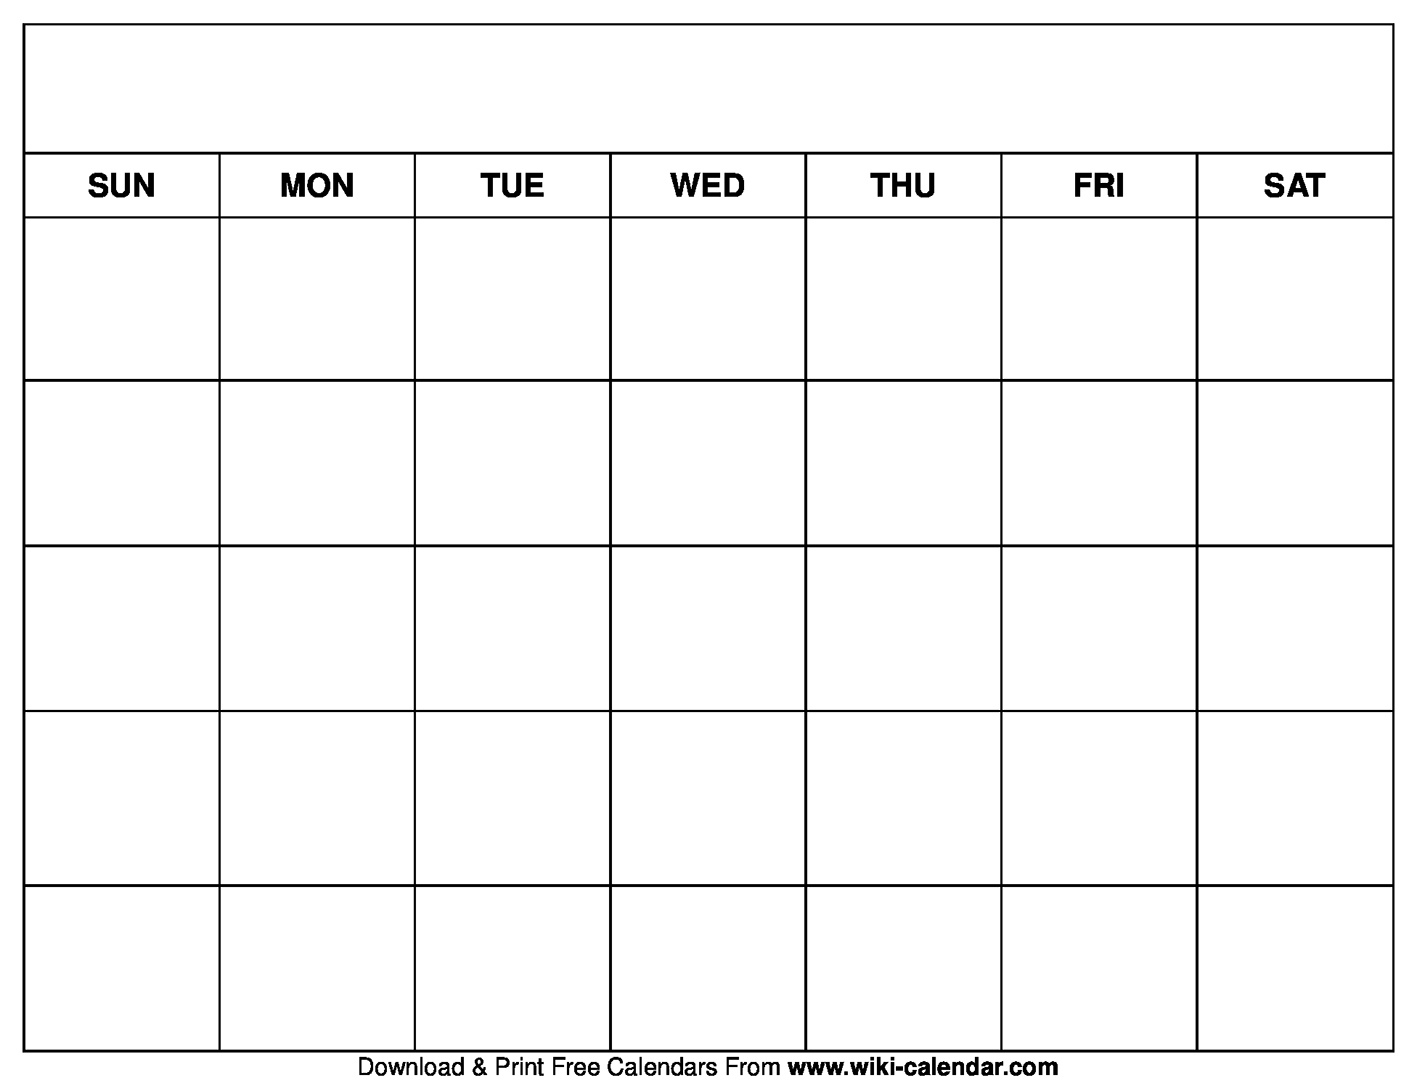 Printable Blank Calendar Templates inside Blank Calendars With Days Of The Week Not Numbered